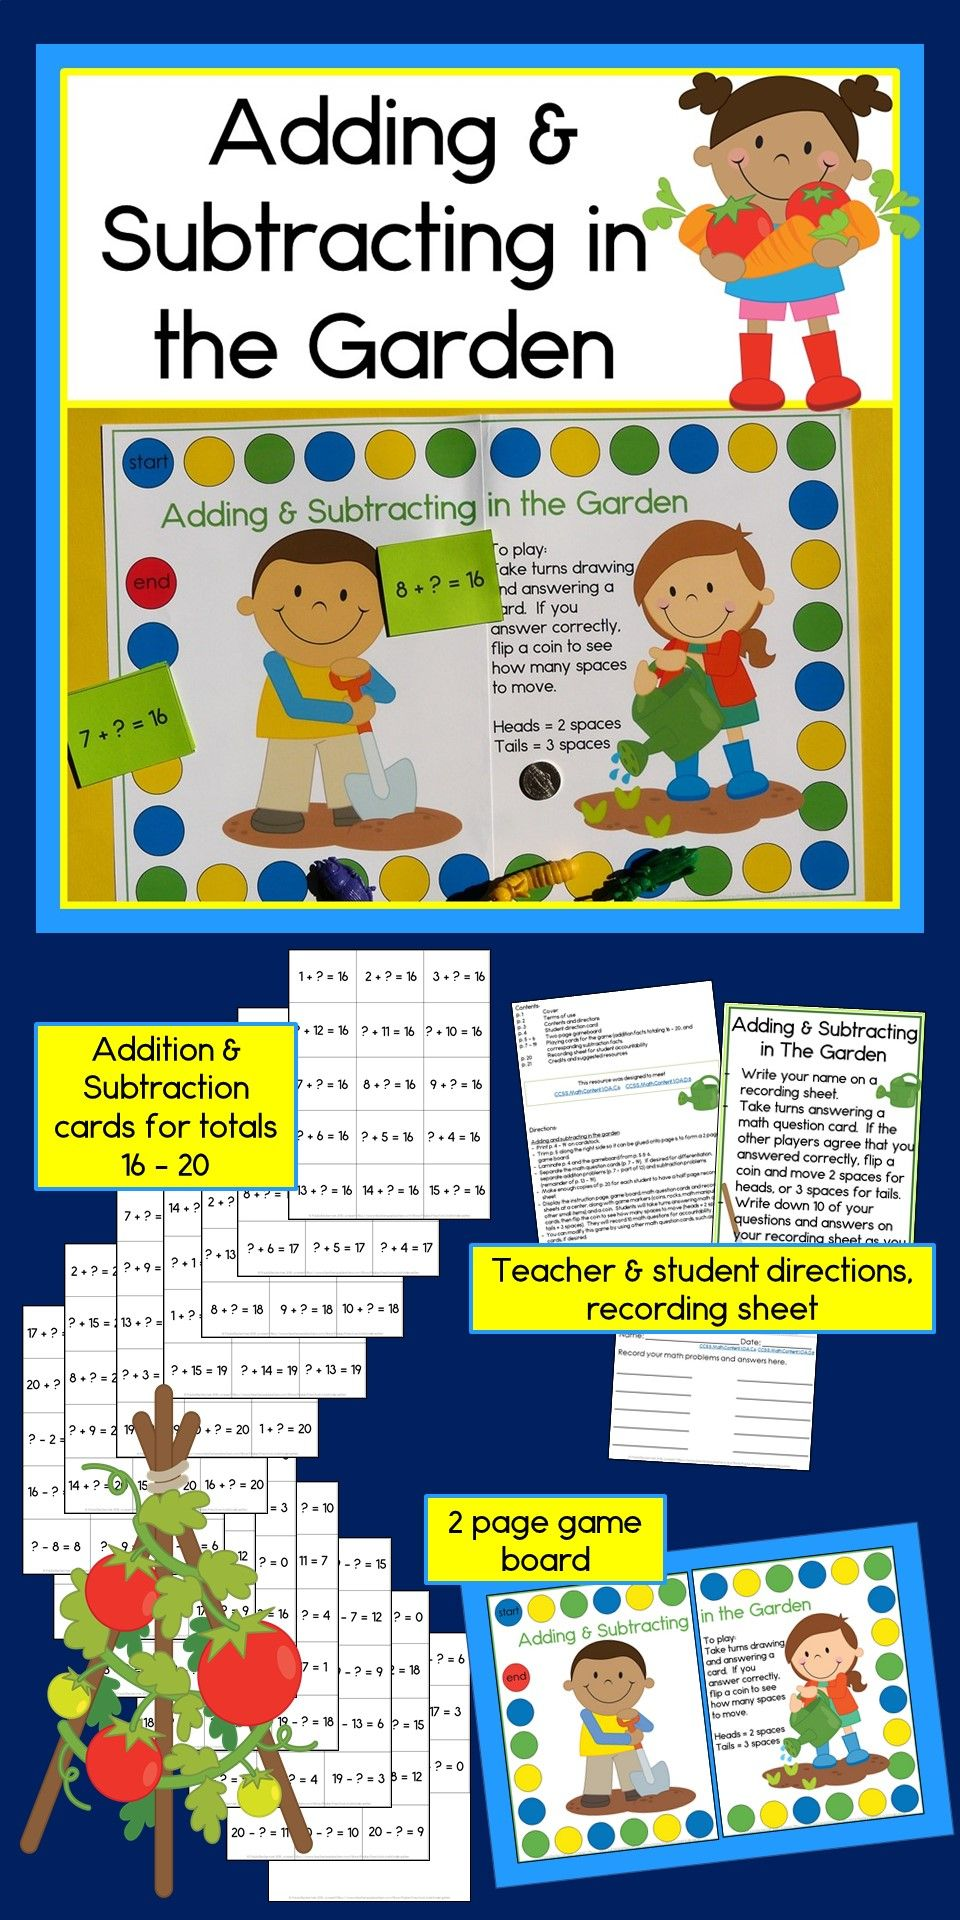 This Addition Subtraction Game Is An Awesome Spring Time Activity For My First Graders Th Addition And Subtraction Subtraction Games Adding And Subtracting Adding and subtracting games for